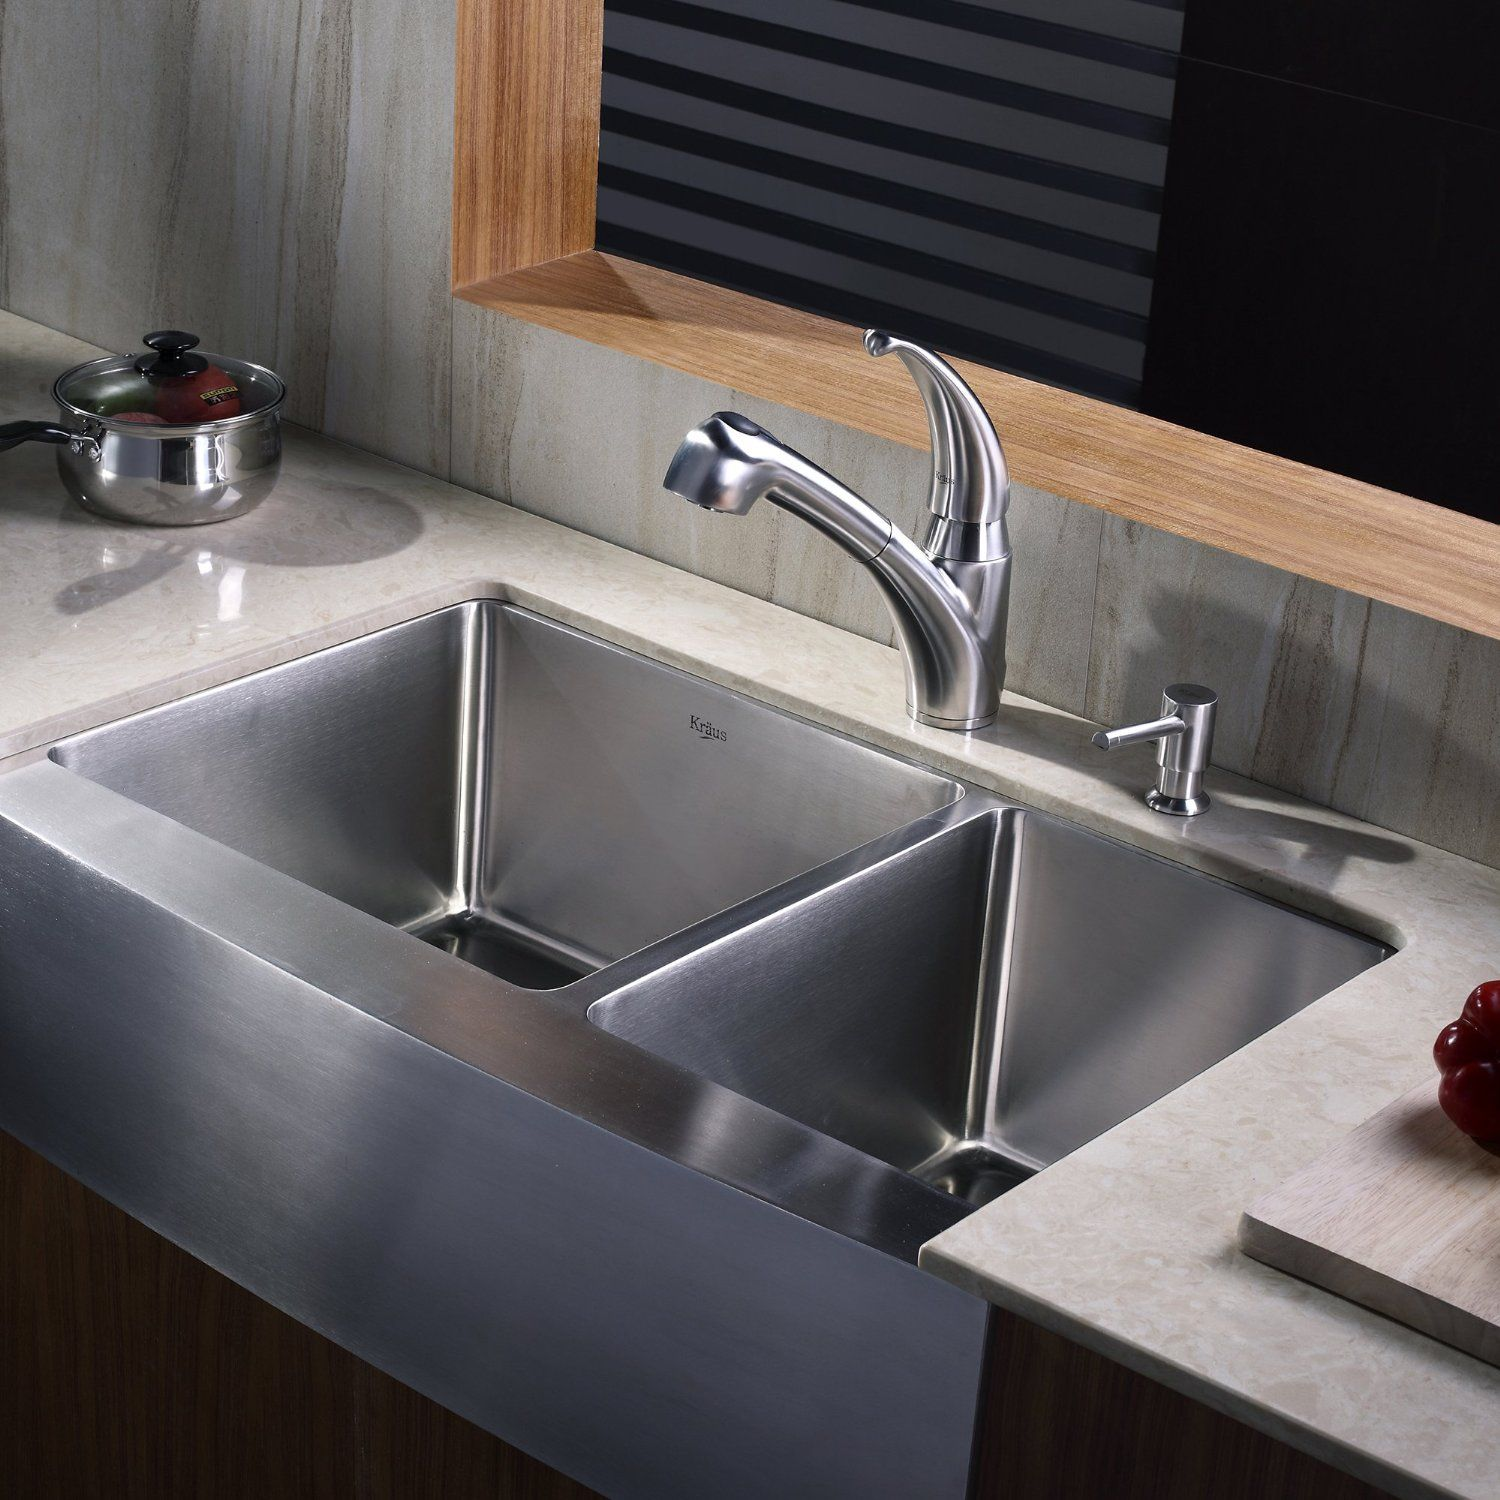 Kraus 33 inch Farmhouse Apron 60 40 Double Bowl 16 gauge Stainless